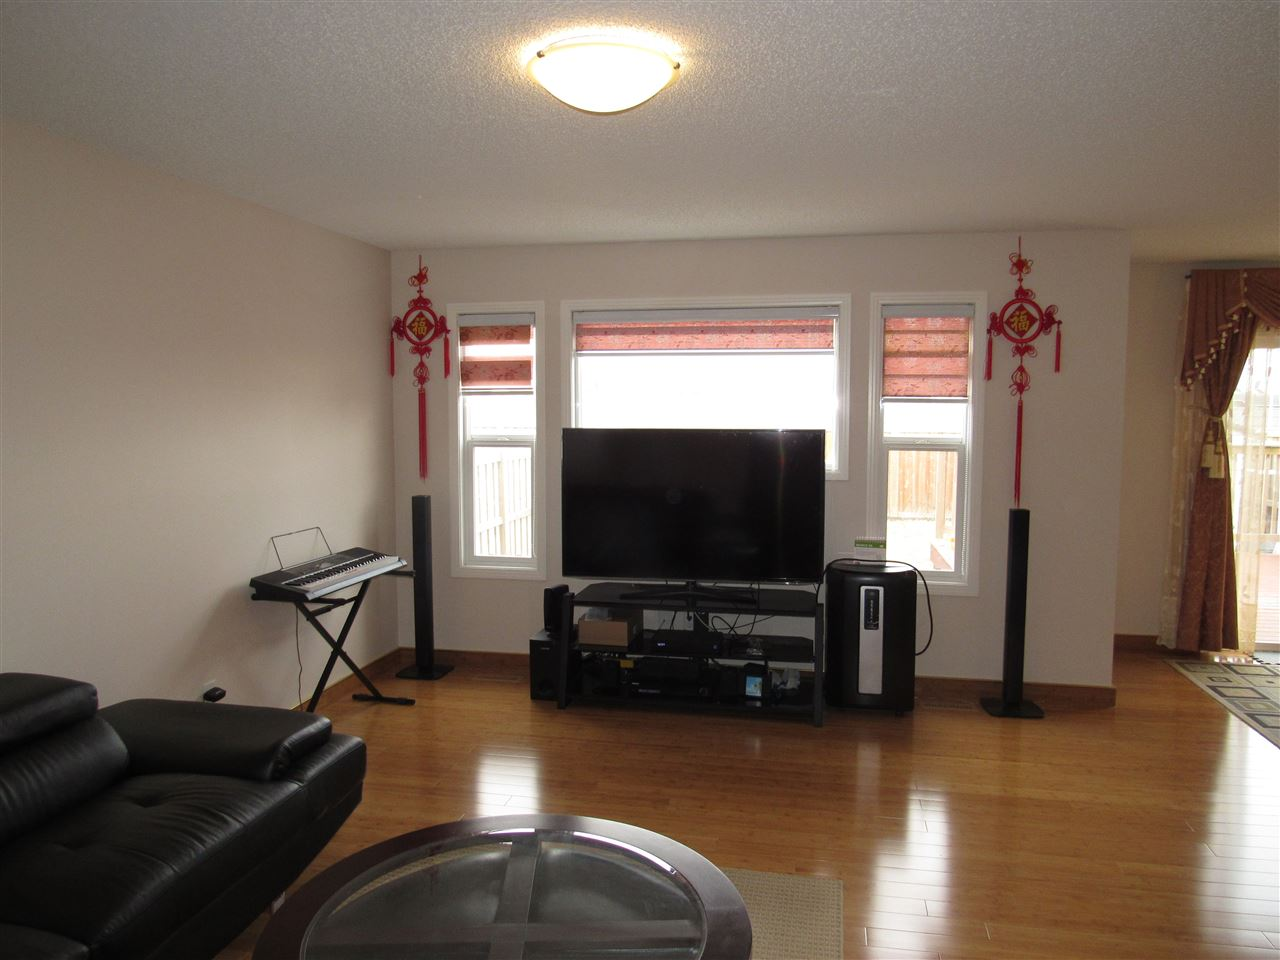 Photo 5: 7904 173 Avenue in Edmonton: Zone 28 House for sale : MLS(r) # E4058384